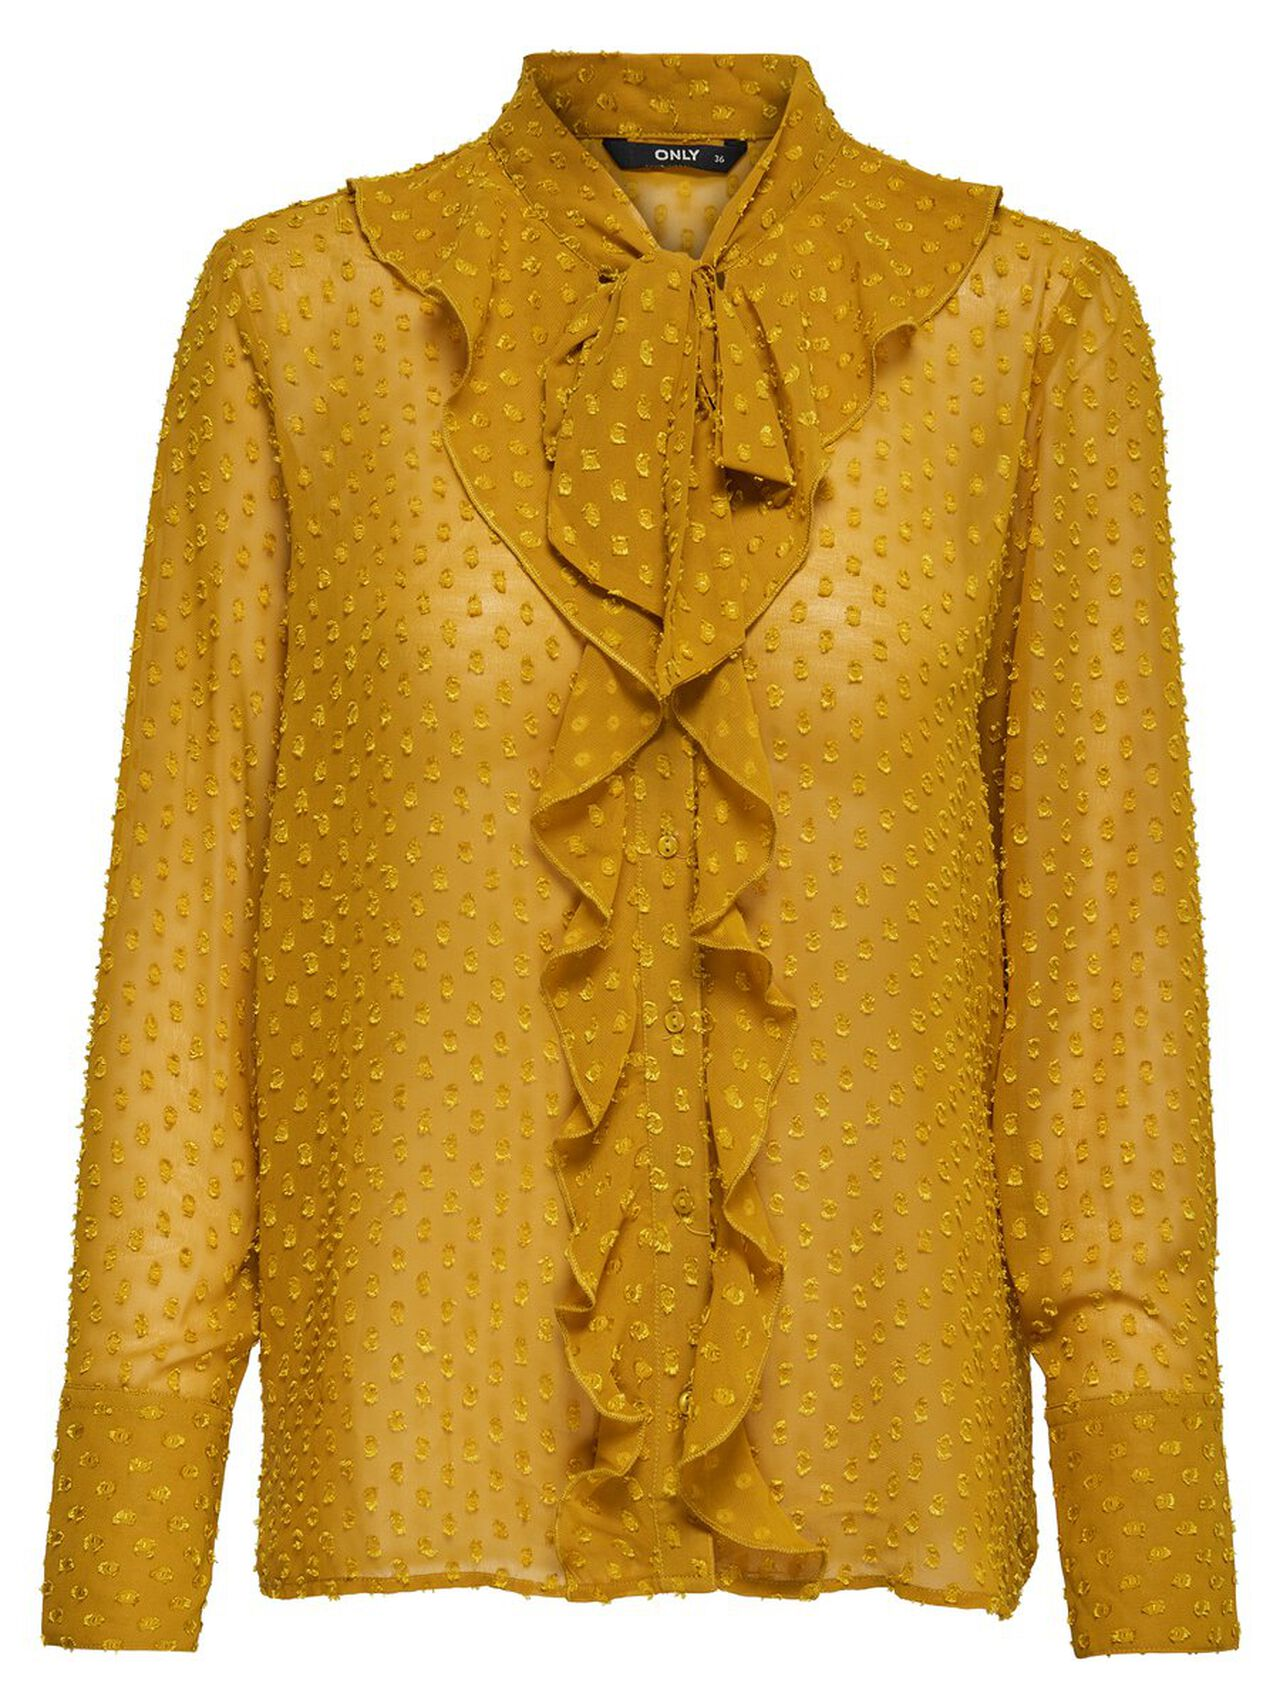 ONLY Frill Long Sleeved Top Women Yellow